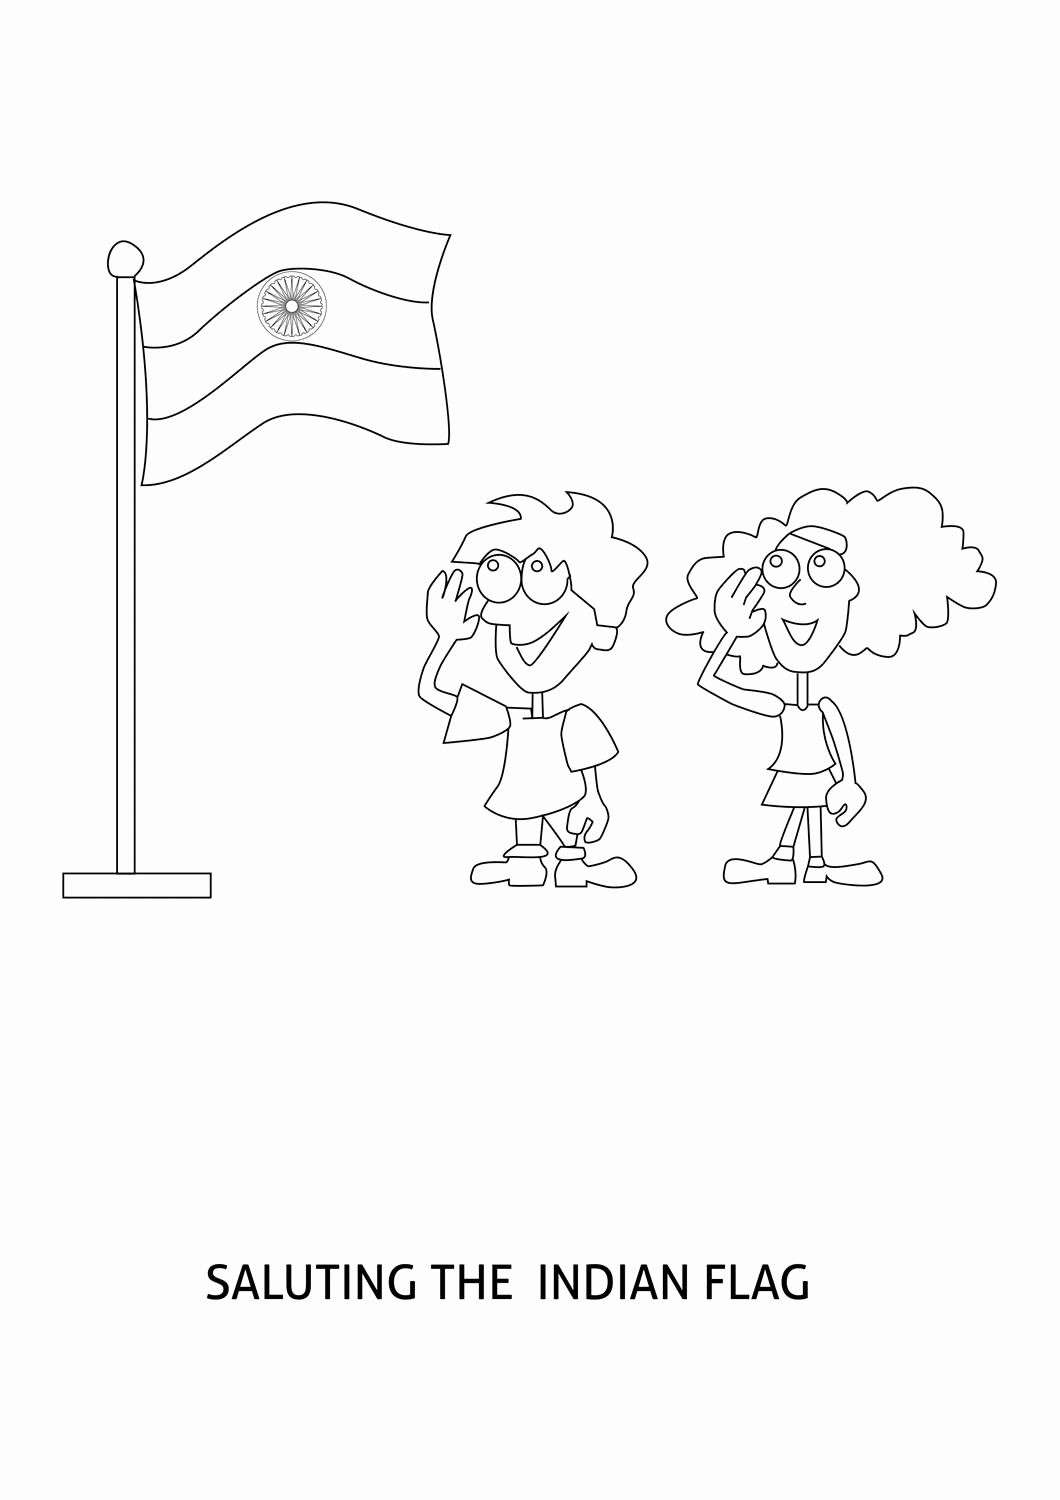 India Flag Coloring Page Inspirational Indian Flag Coloring Pages